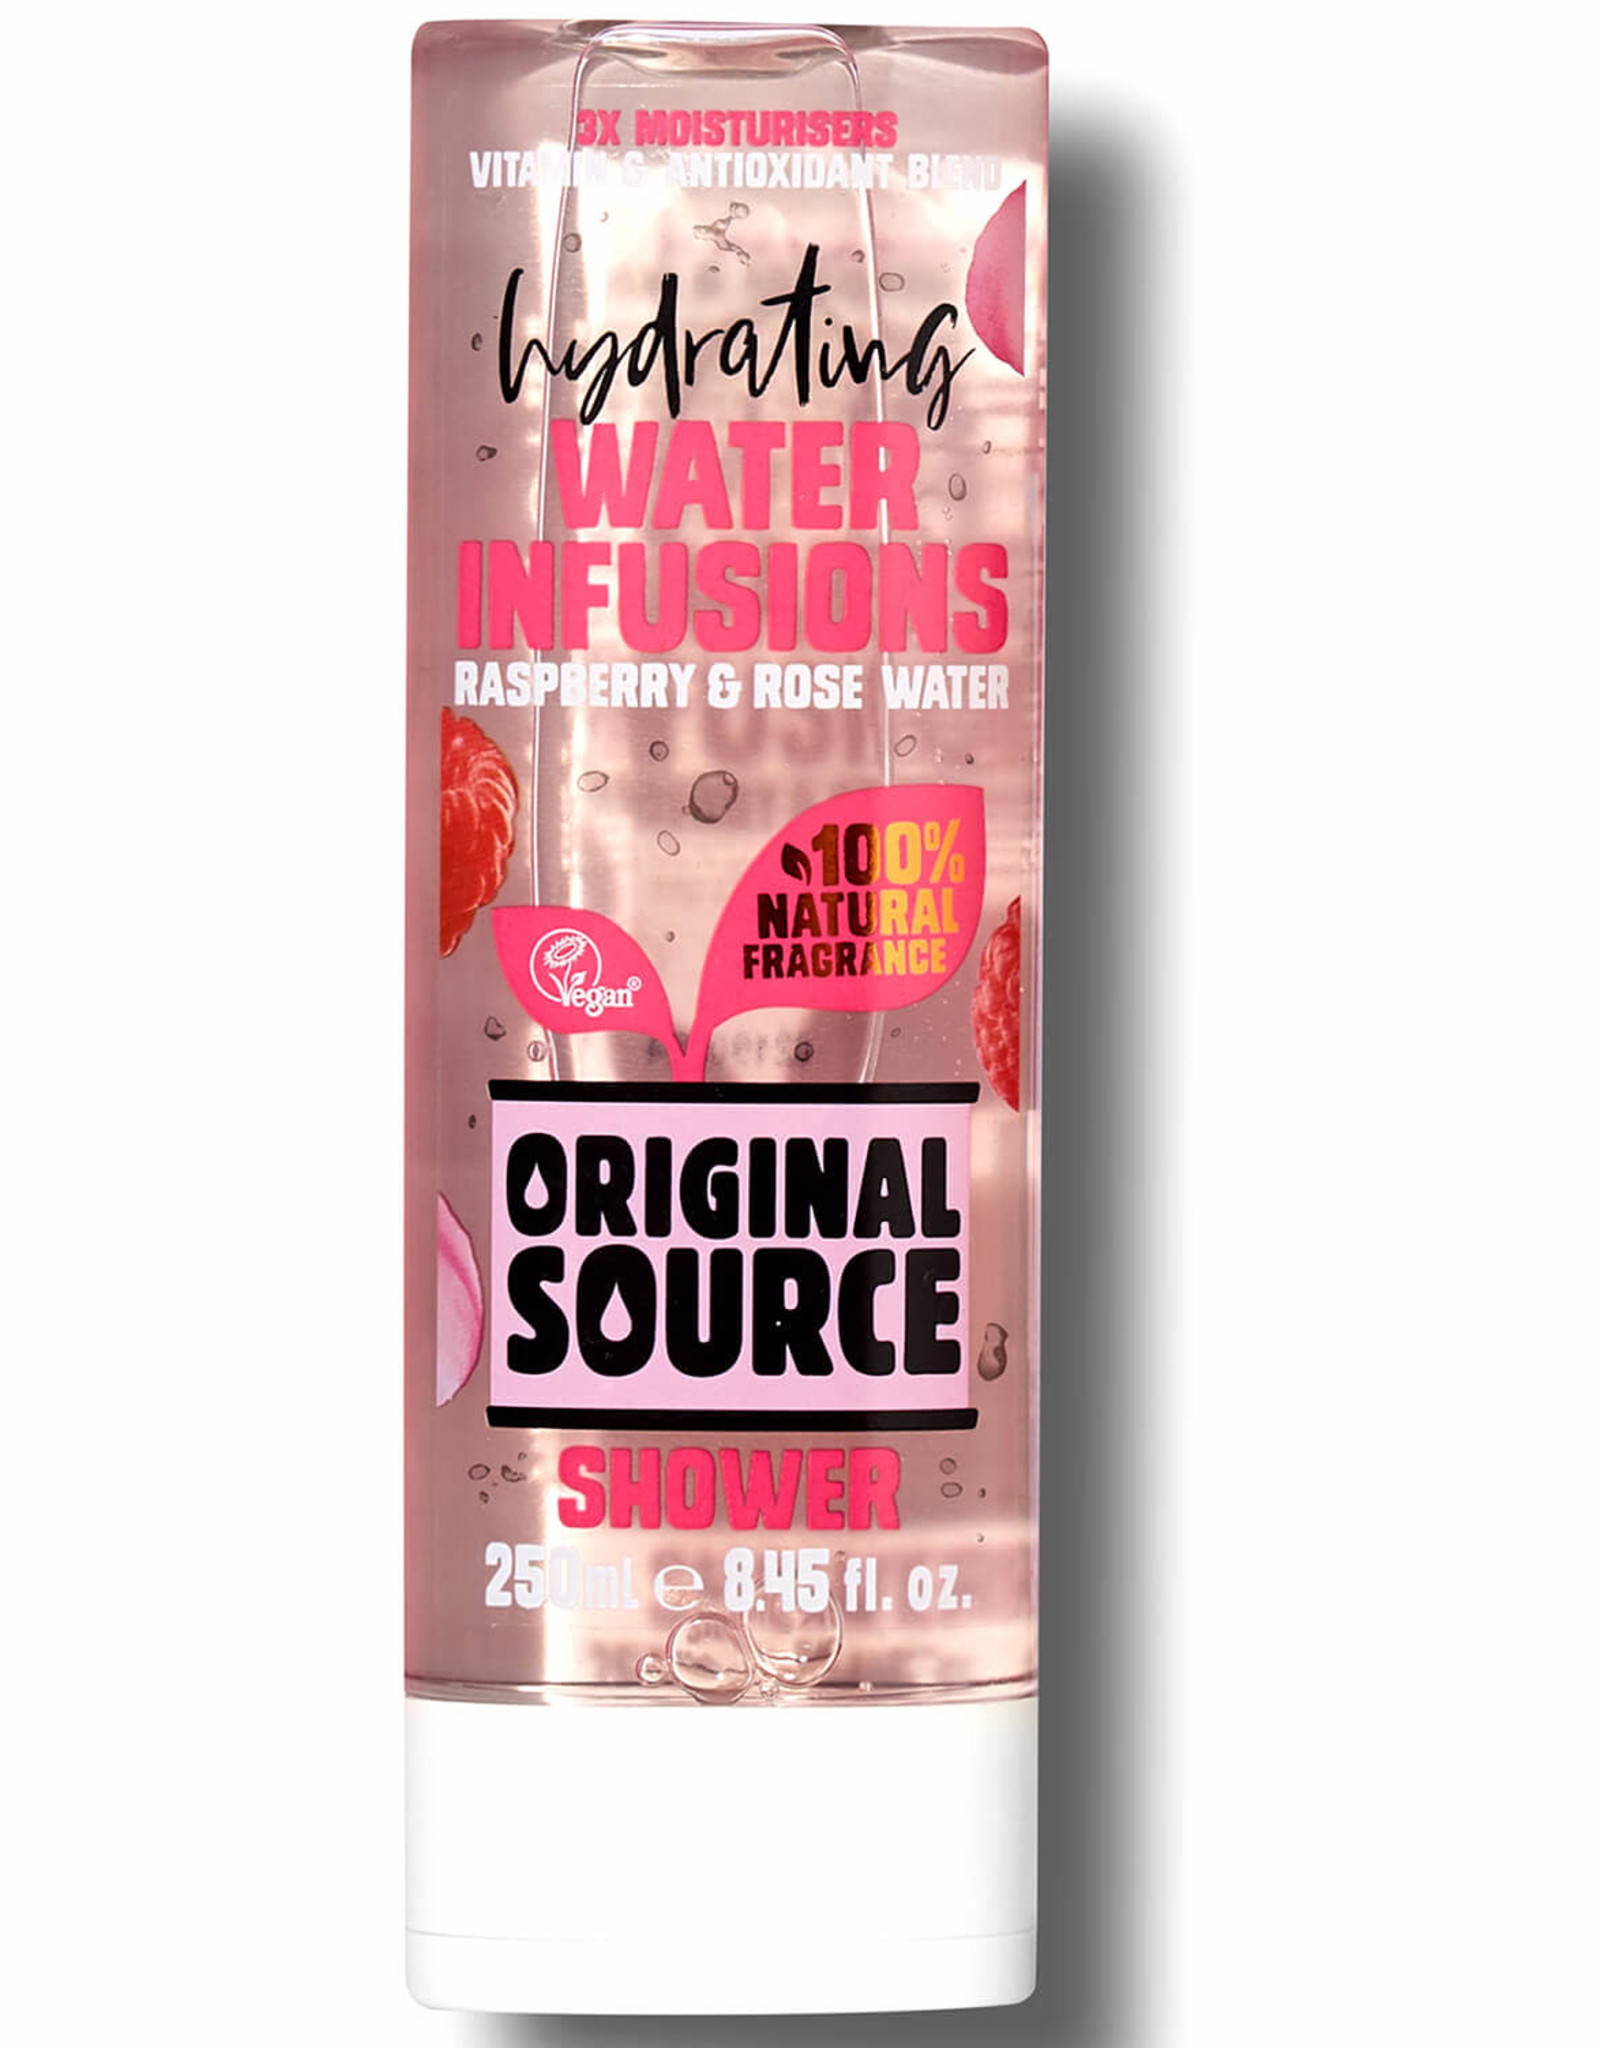 Original Source Hydrating Water Infusions Raspberyy & Rose water